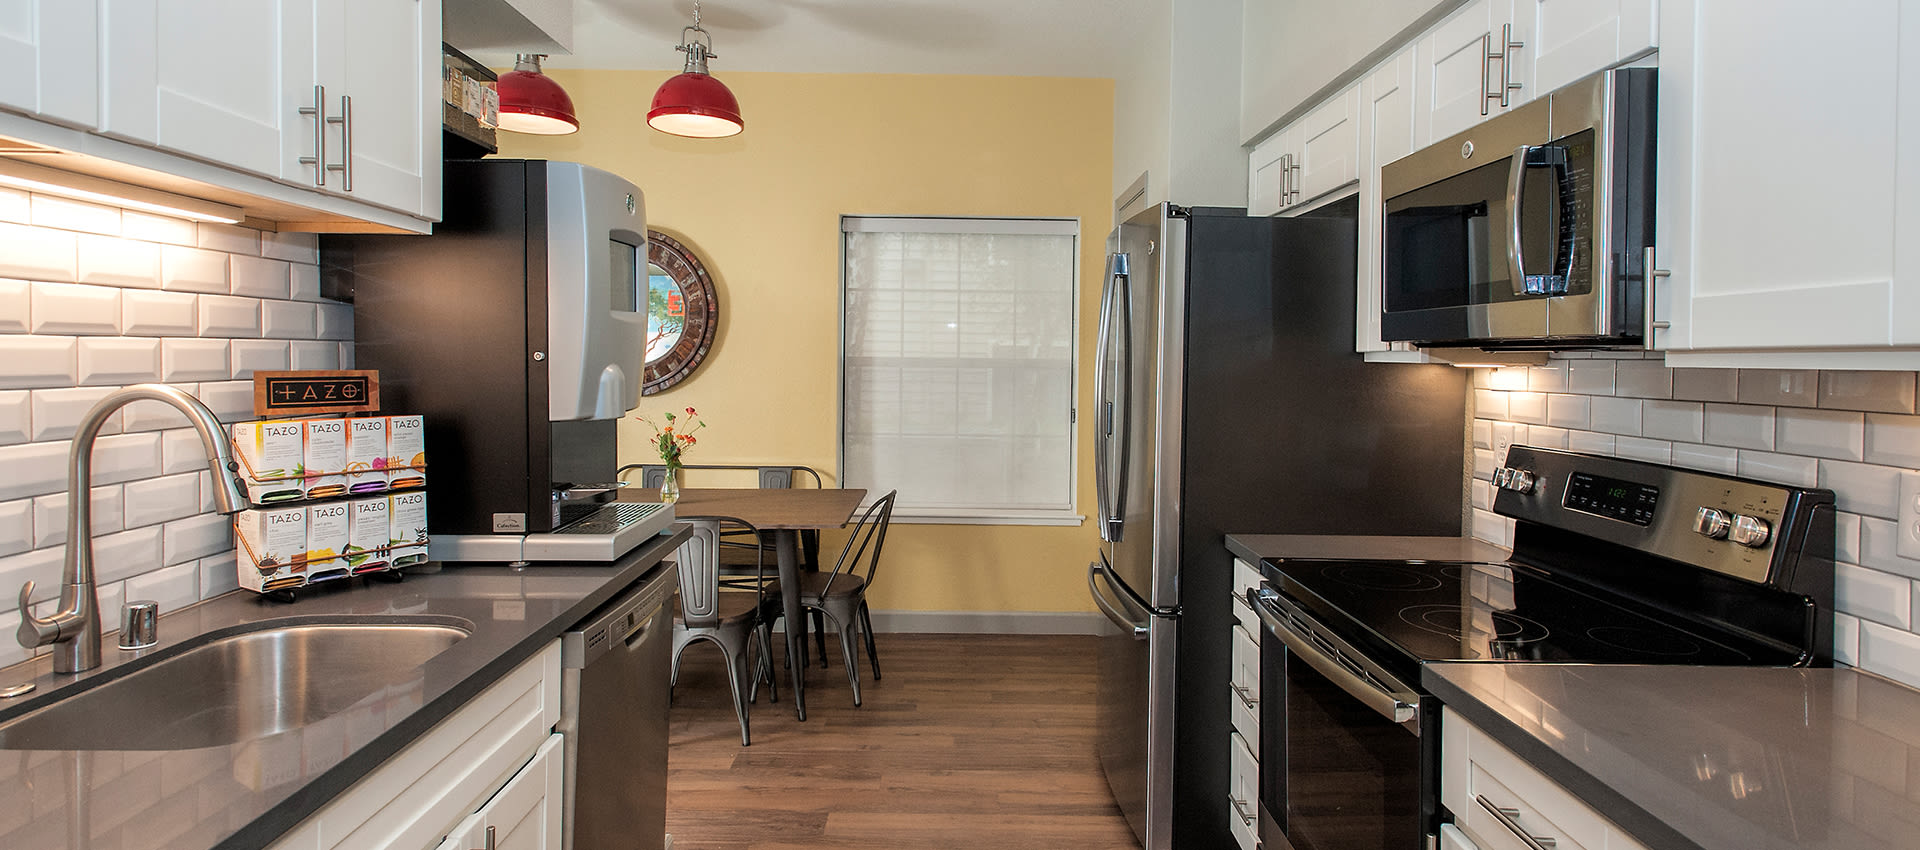 Entertaining kitchen and coffee bar at Reserve at Capital Center Apartment Homes in Rancho Cordova, CA